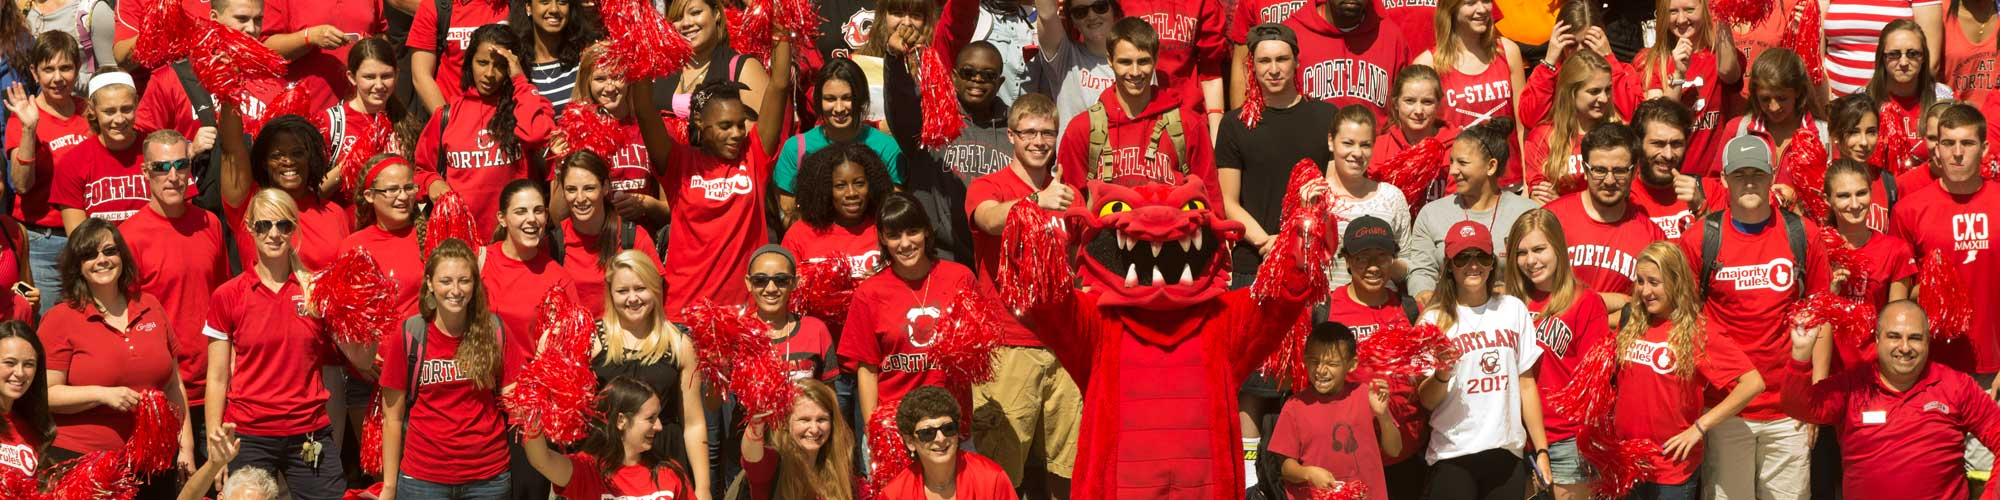 Red Dragon Pride Day campus photo in 2014